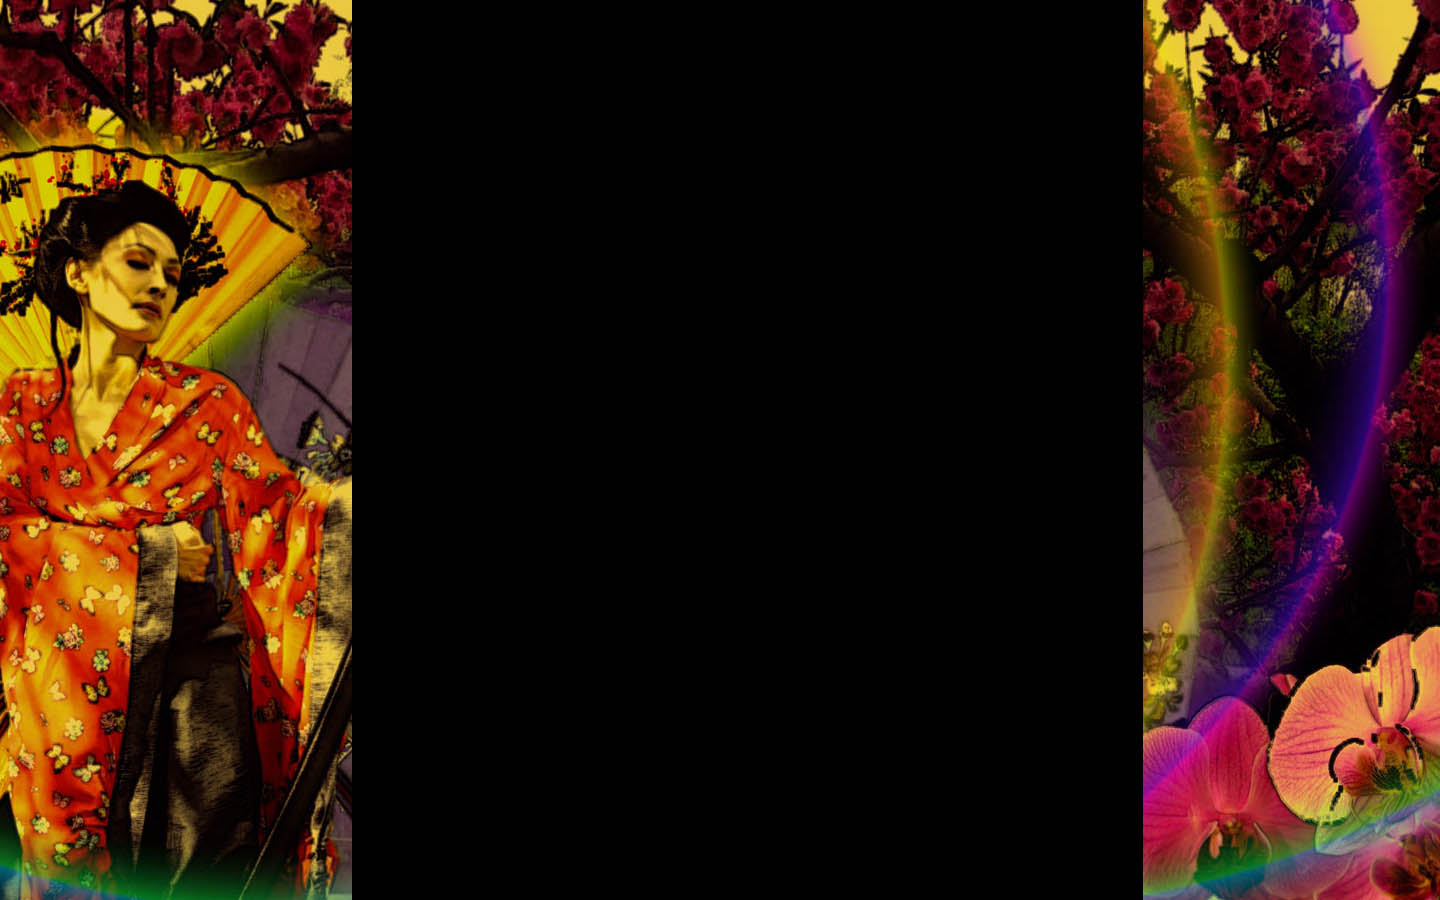 Trippy Backgrounds For Twitter Trippy Twitter Backgrounds 1440x900